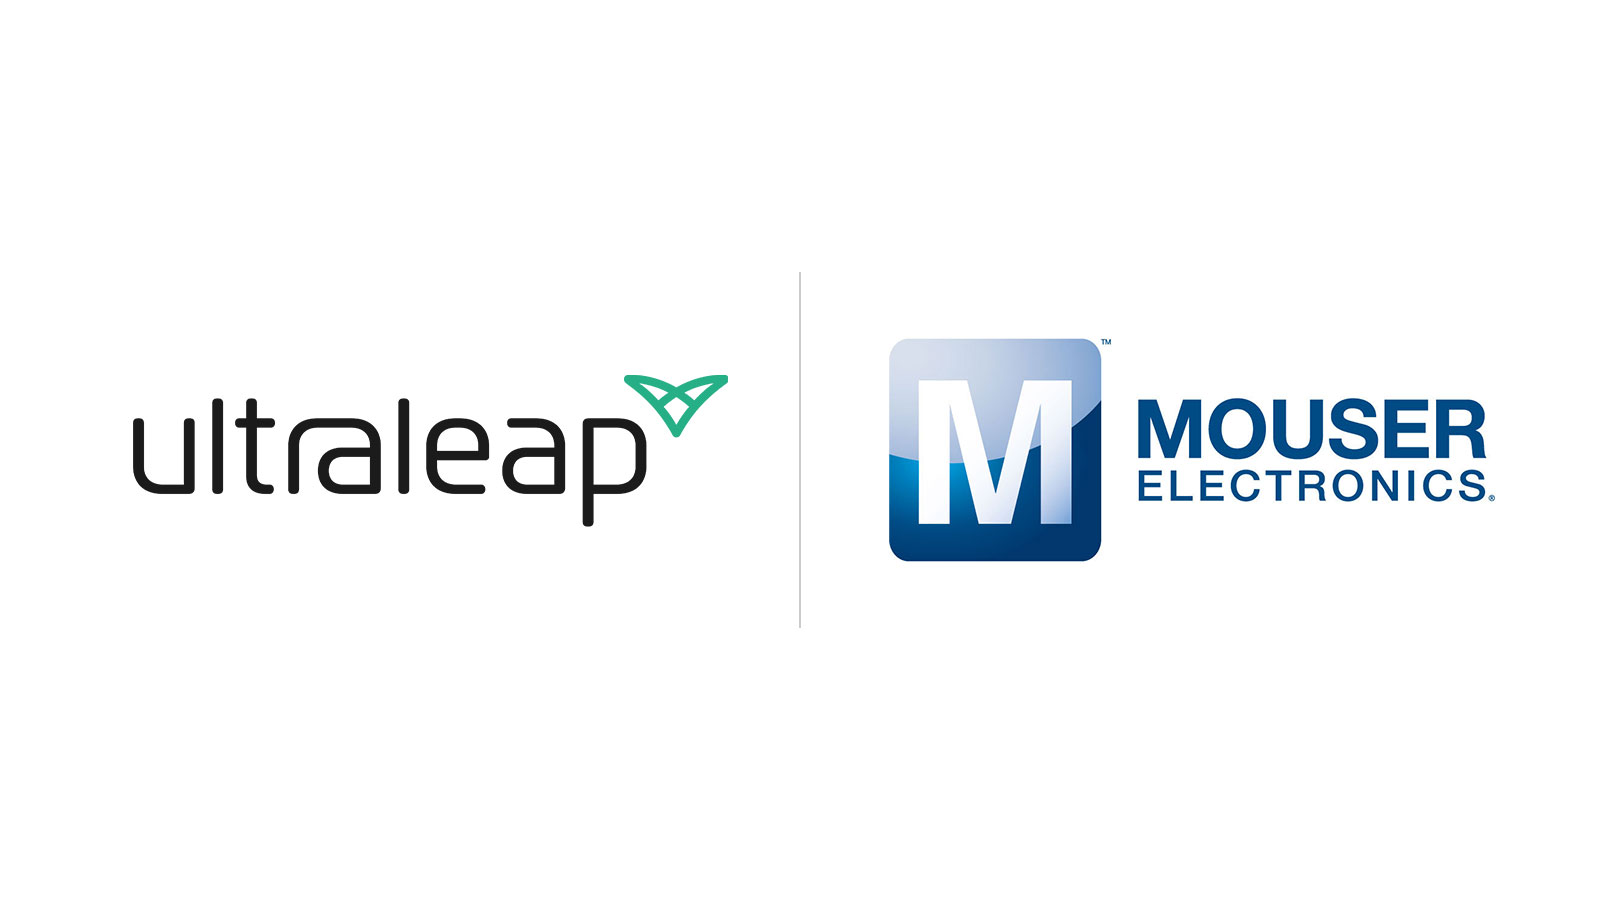 Ultraleap and Mouser logos